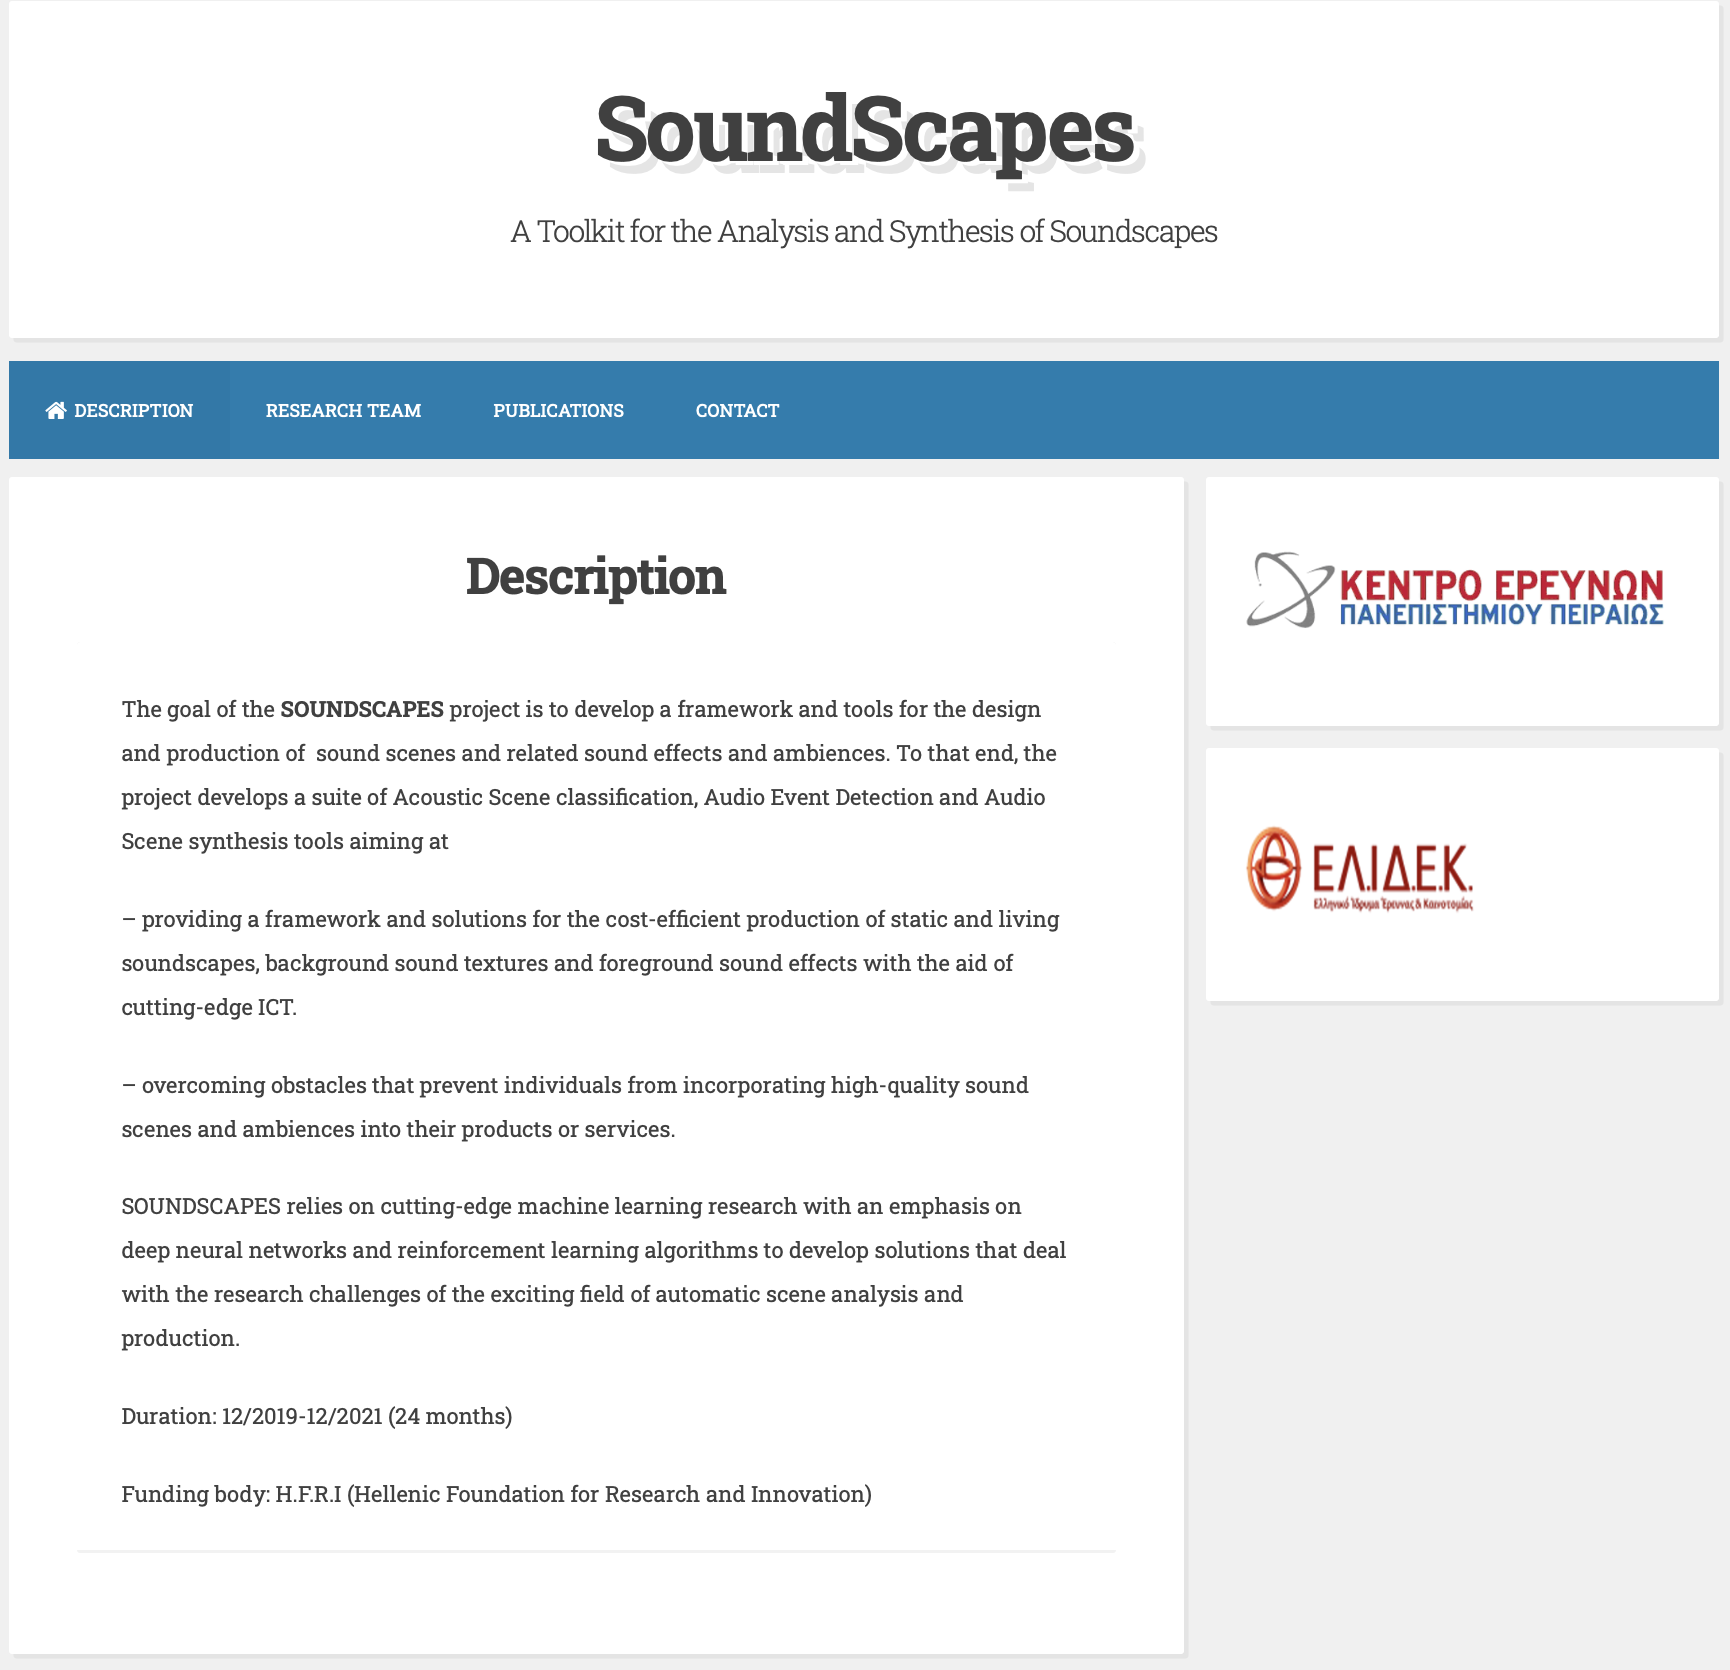 SoundScapes – A Toolkit for the Analysis and Synthesis of Soundscapes